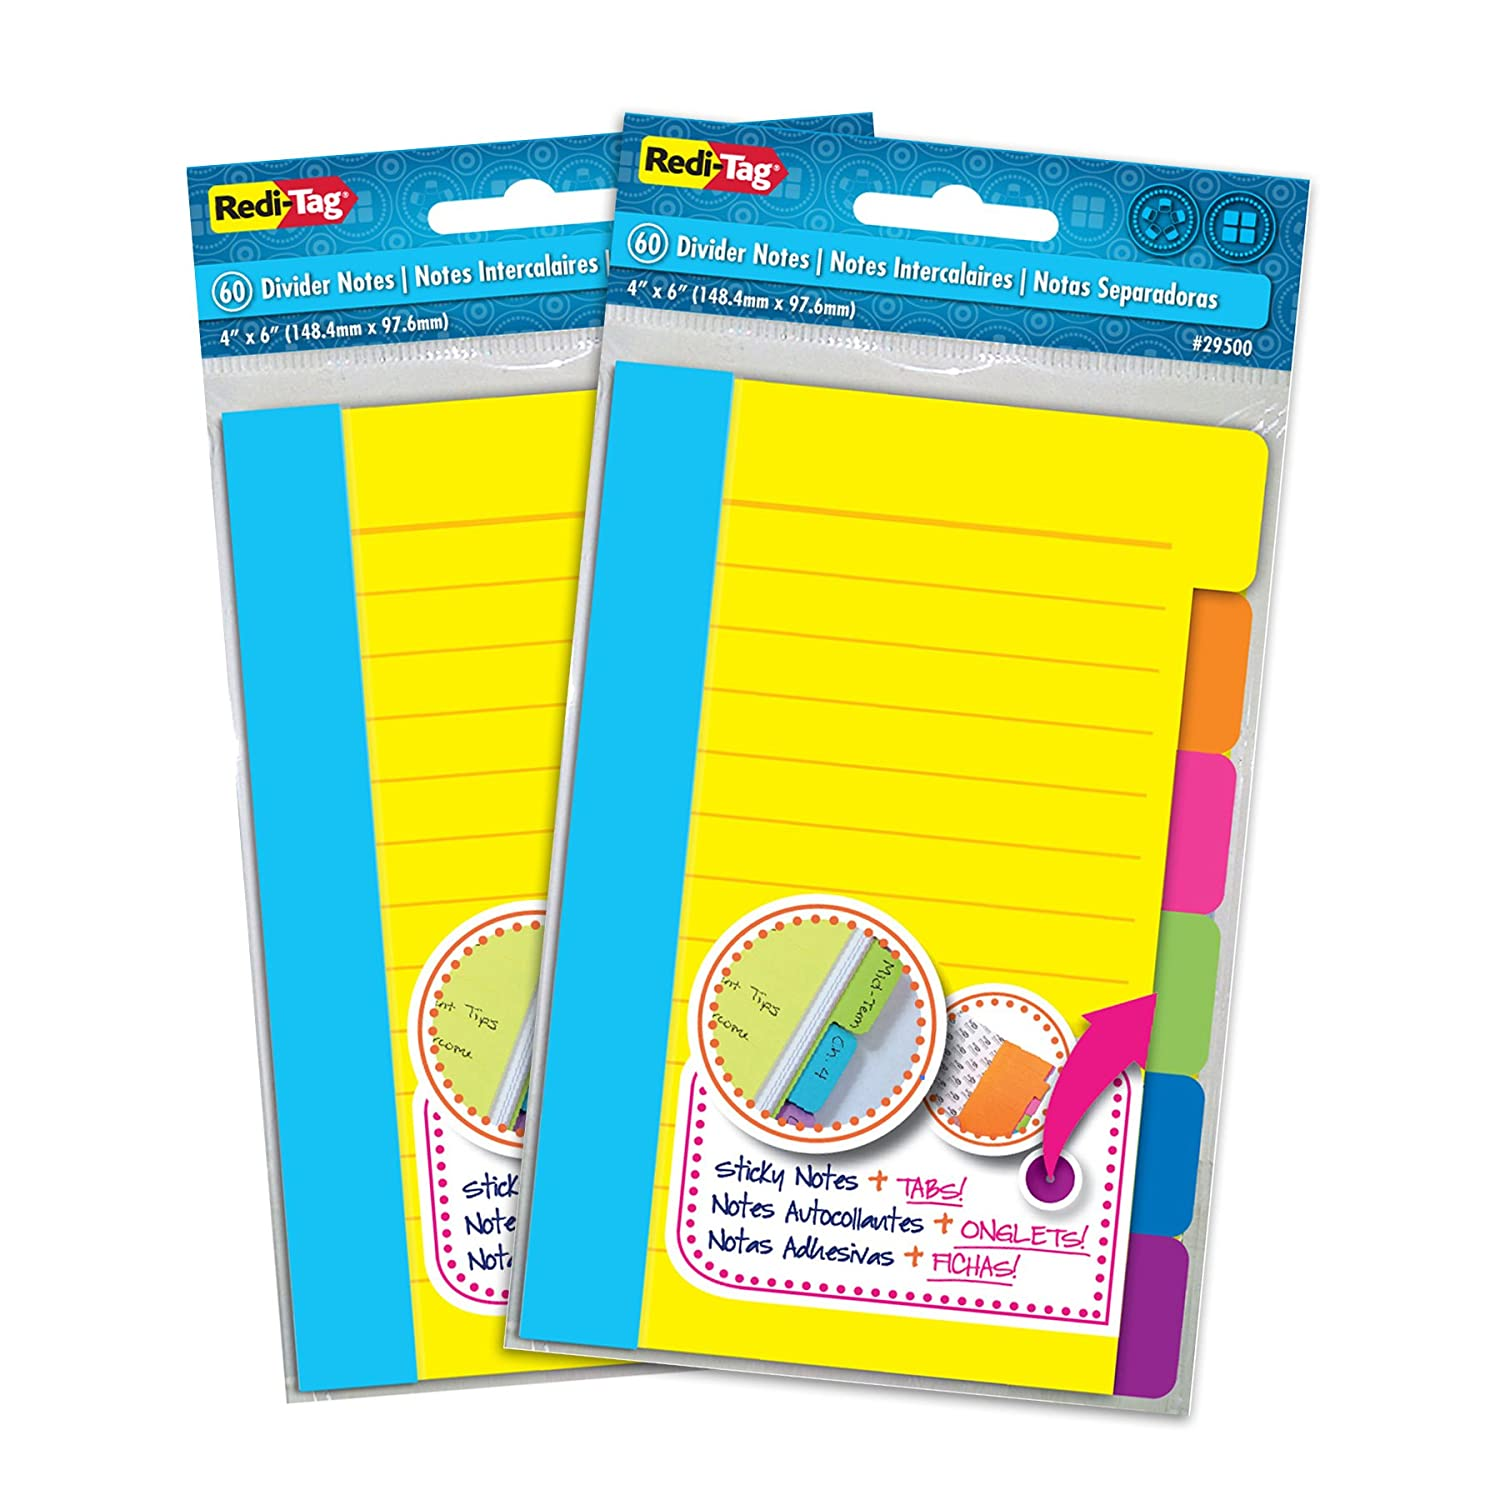 Redi Tag Divider Sticky Notes, 60 Ruled Notes Per Pack, 4 X 6 Inches, Assorted Neon Colors, 2 Pack (10290) by Redi Tag